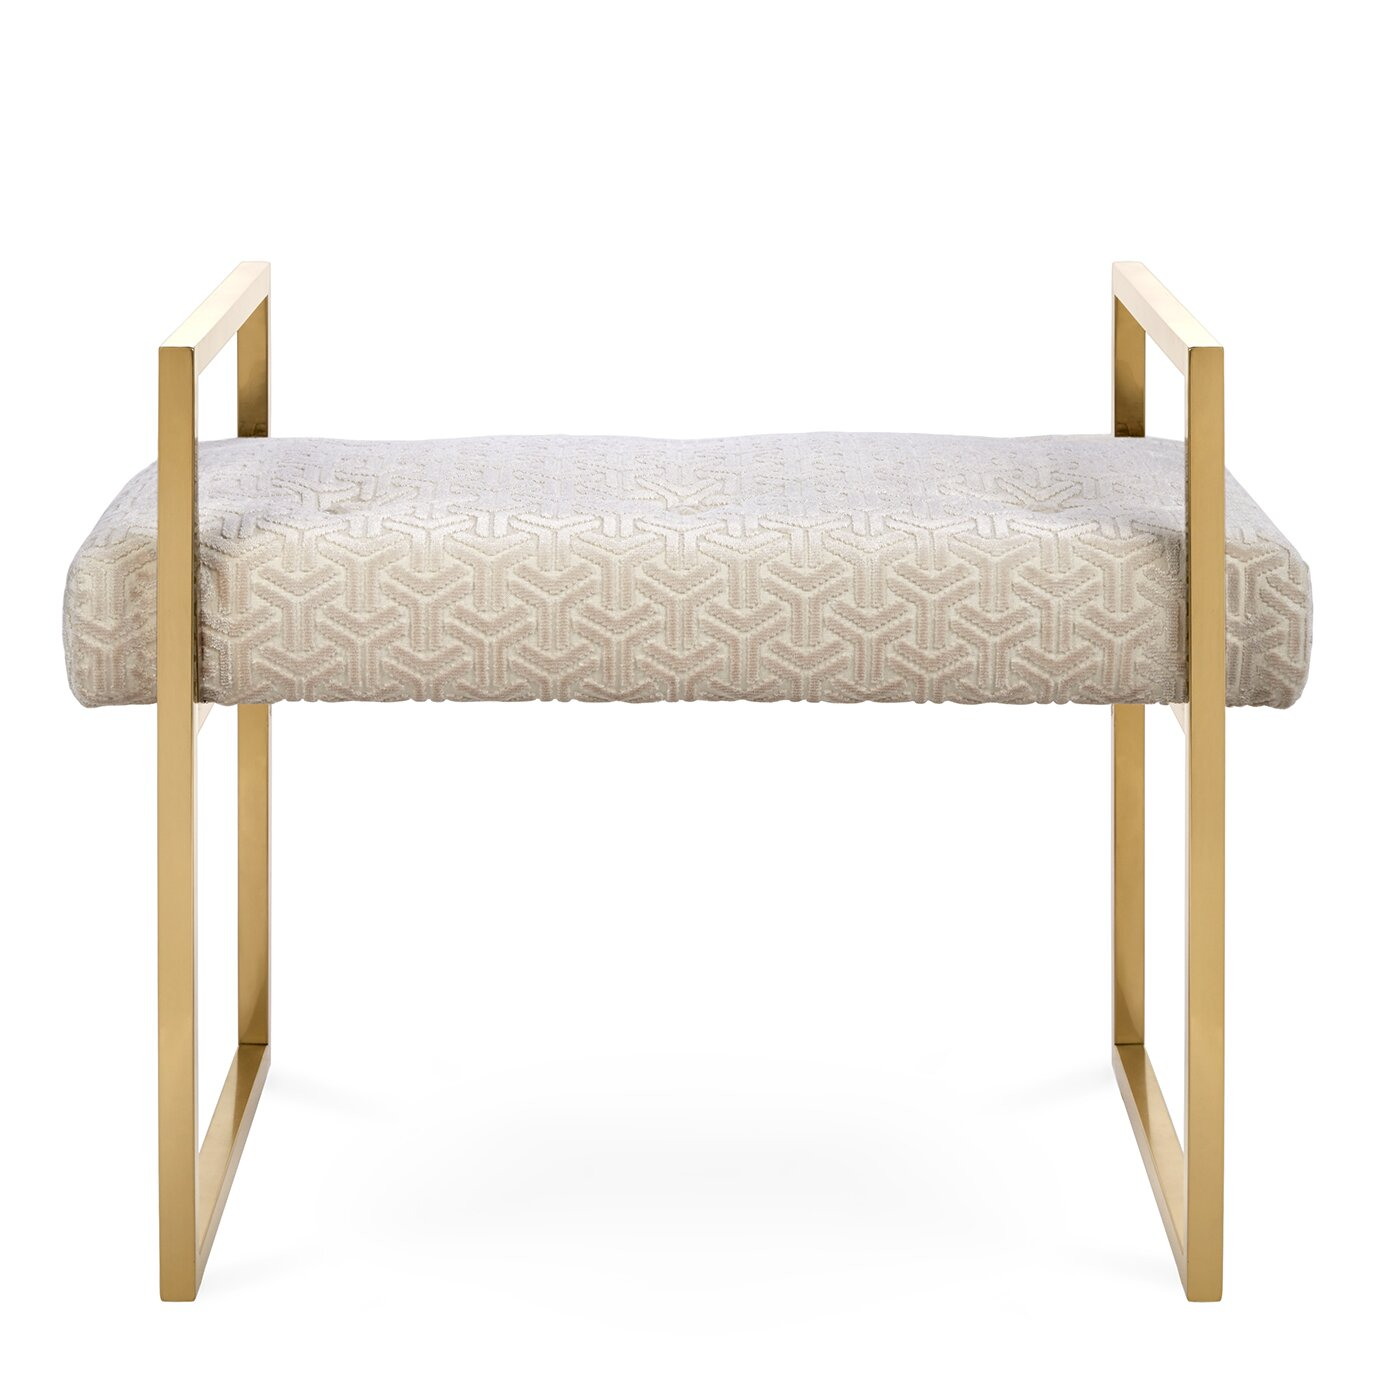 Bedroom bench with arms - Caine Bench